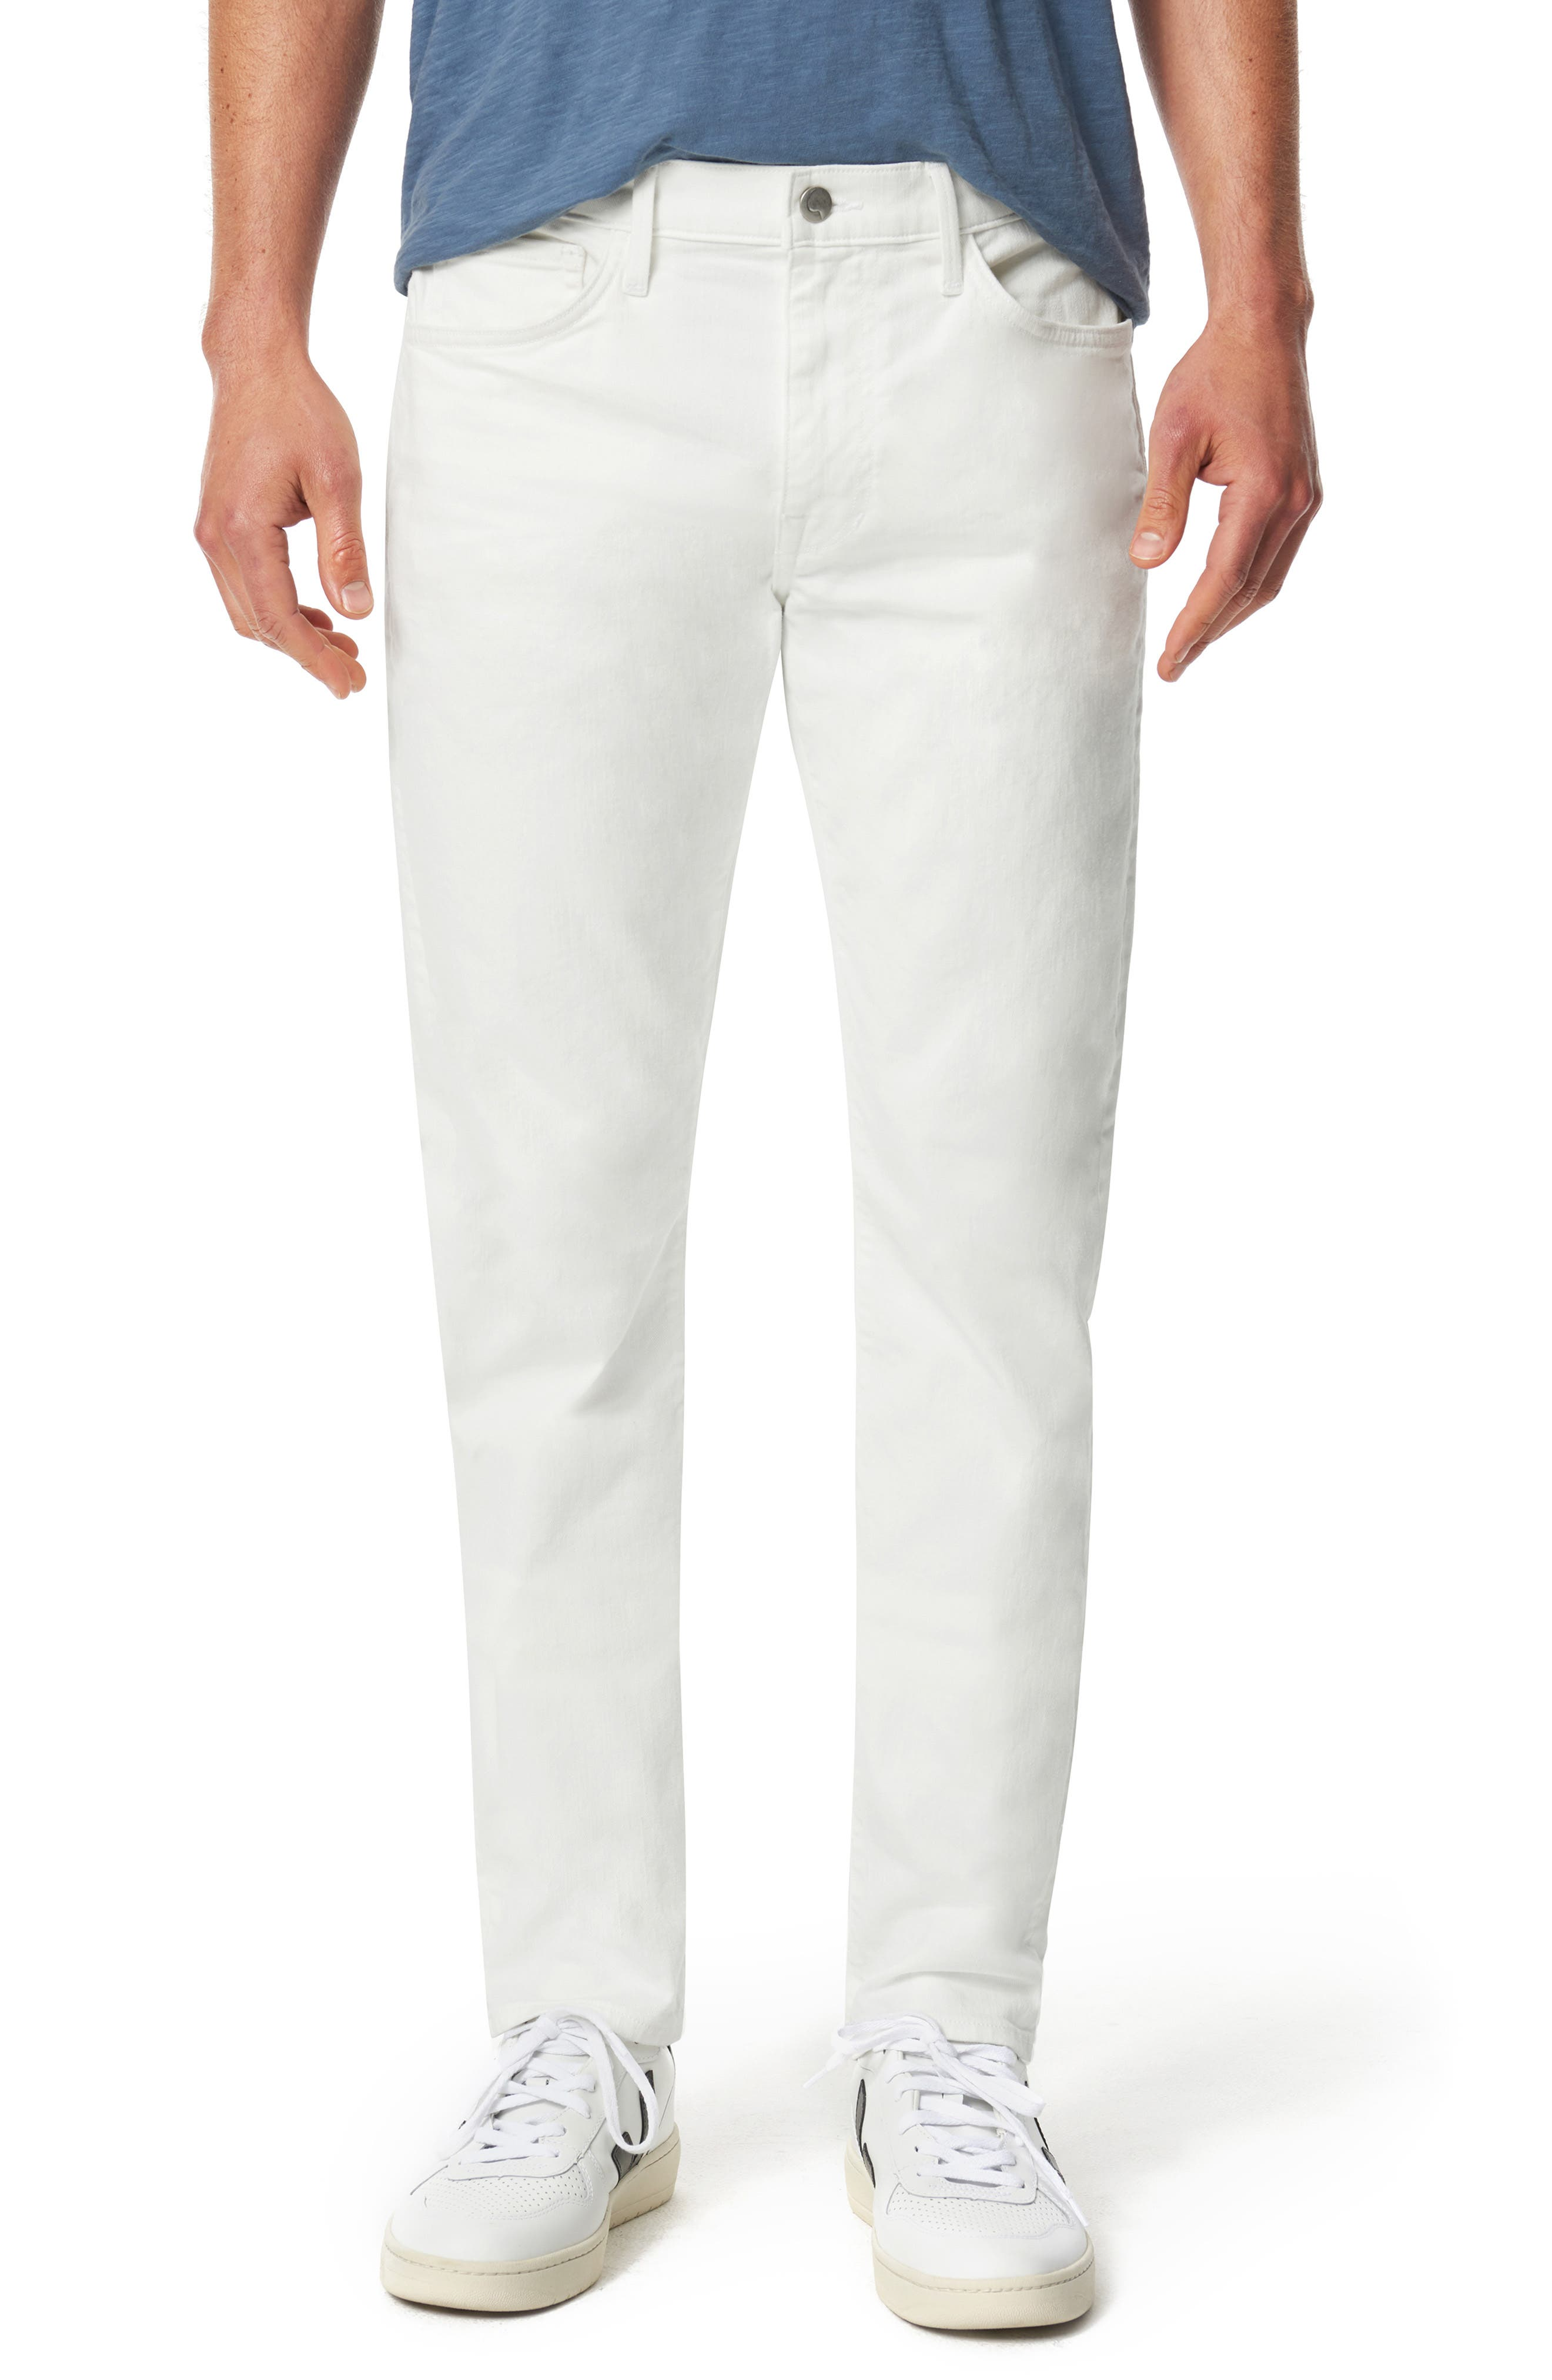 Kinectic The Asher Slim Fit Jeans